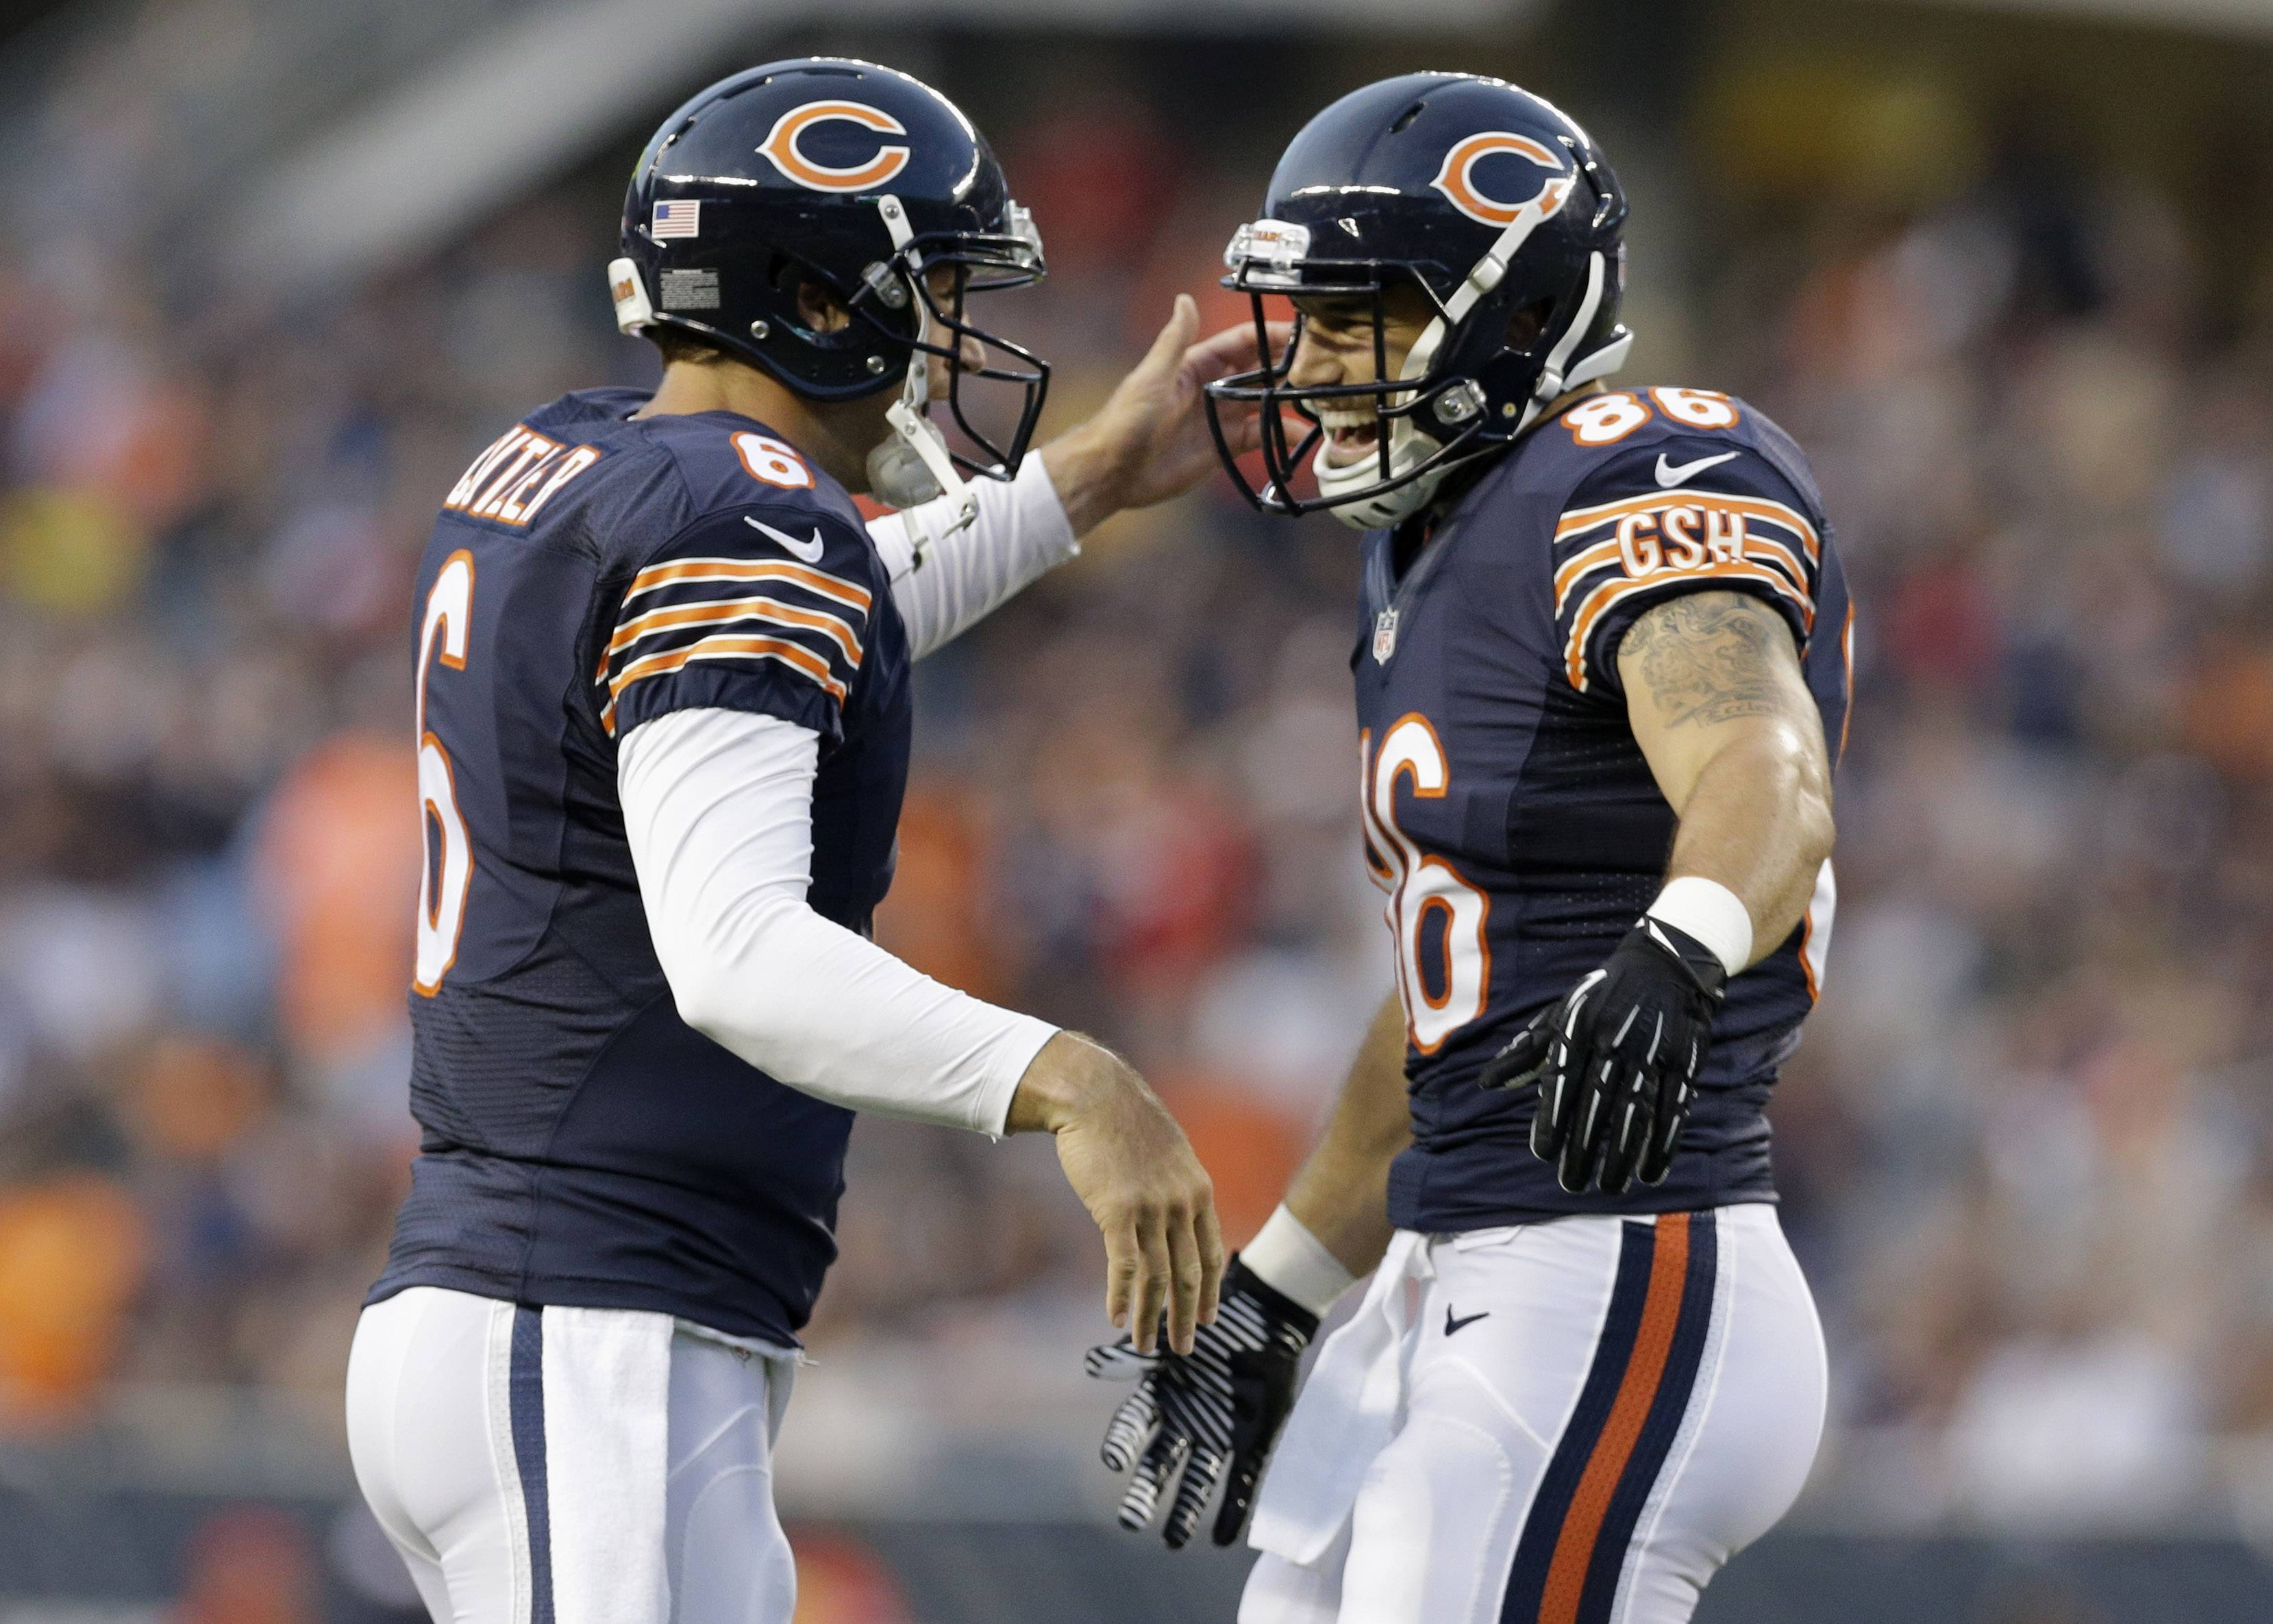 Chicago Bears quarterback Jay Cutler (6) celebrates a touchdown with tight end Zach Miller (86) in the first half of an NFL preseason football game against the Philadelphia Eagles on Friday, Aug. 8, 2014, in Chicago.